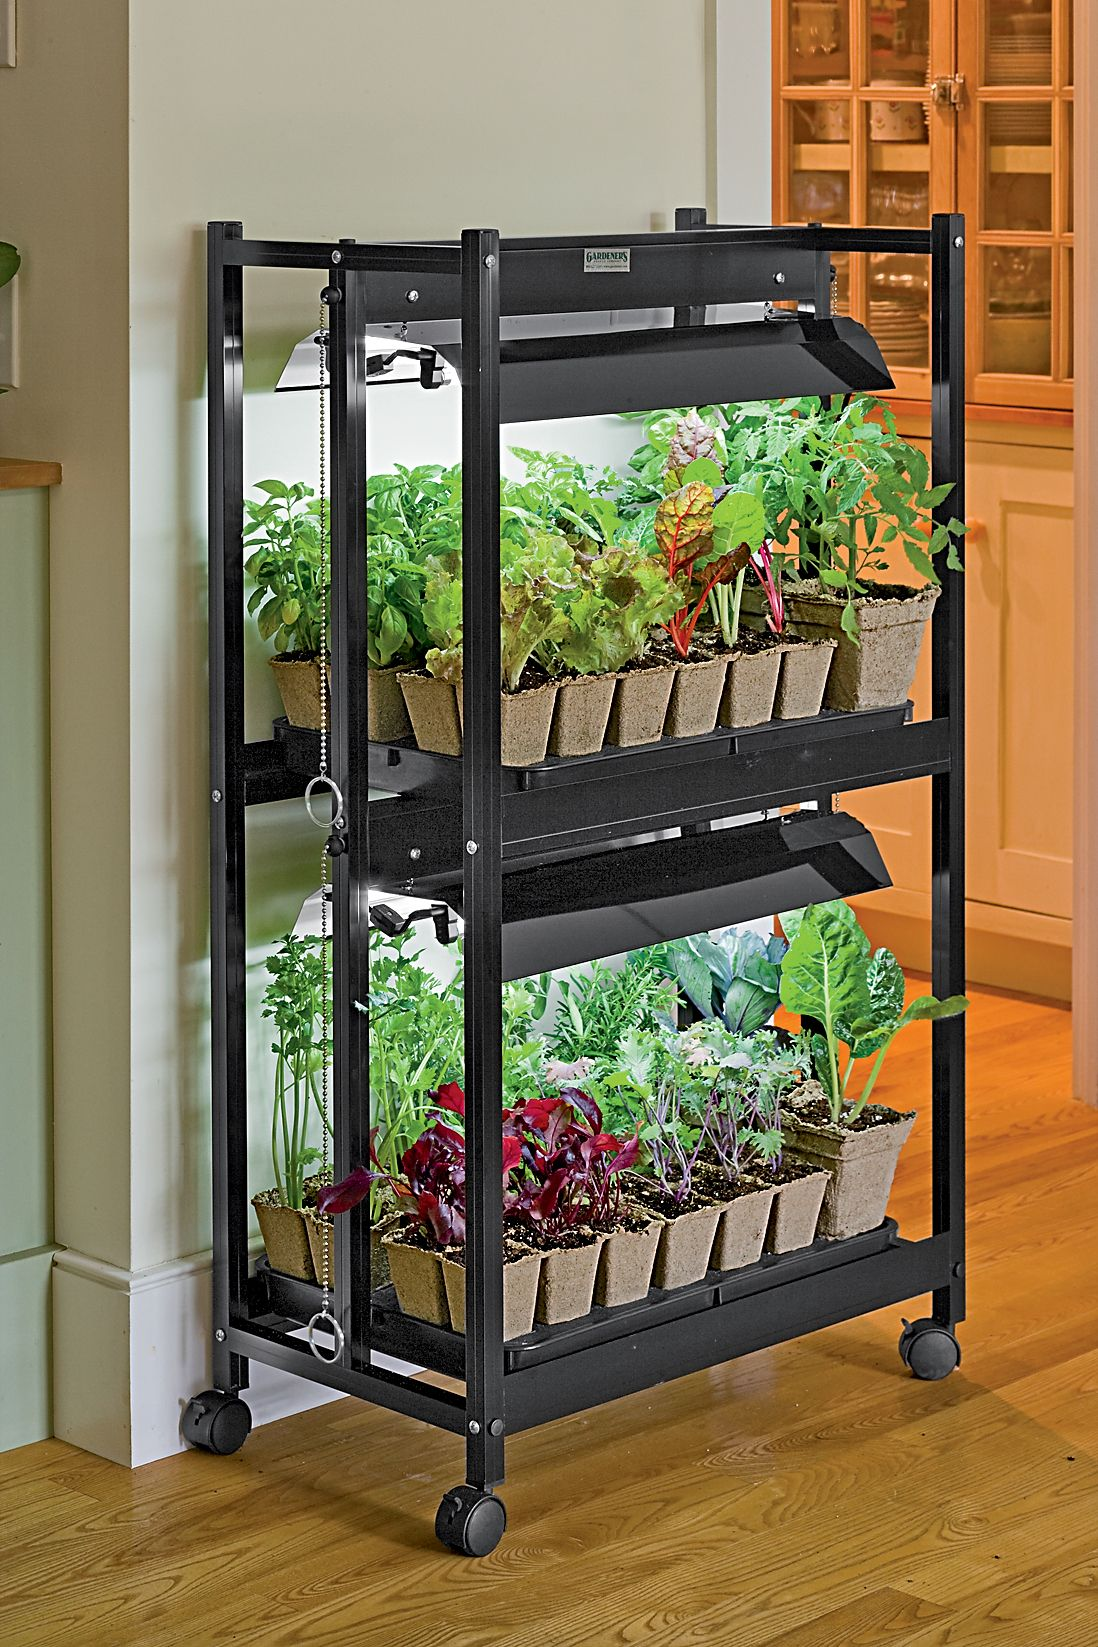 Kitchen Gardening Tips Indoor Vegetable Garden Tips Starting Vegetable Gardens From